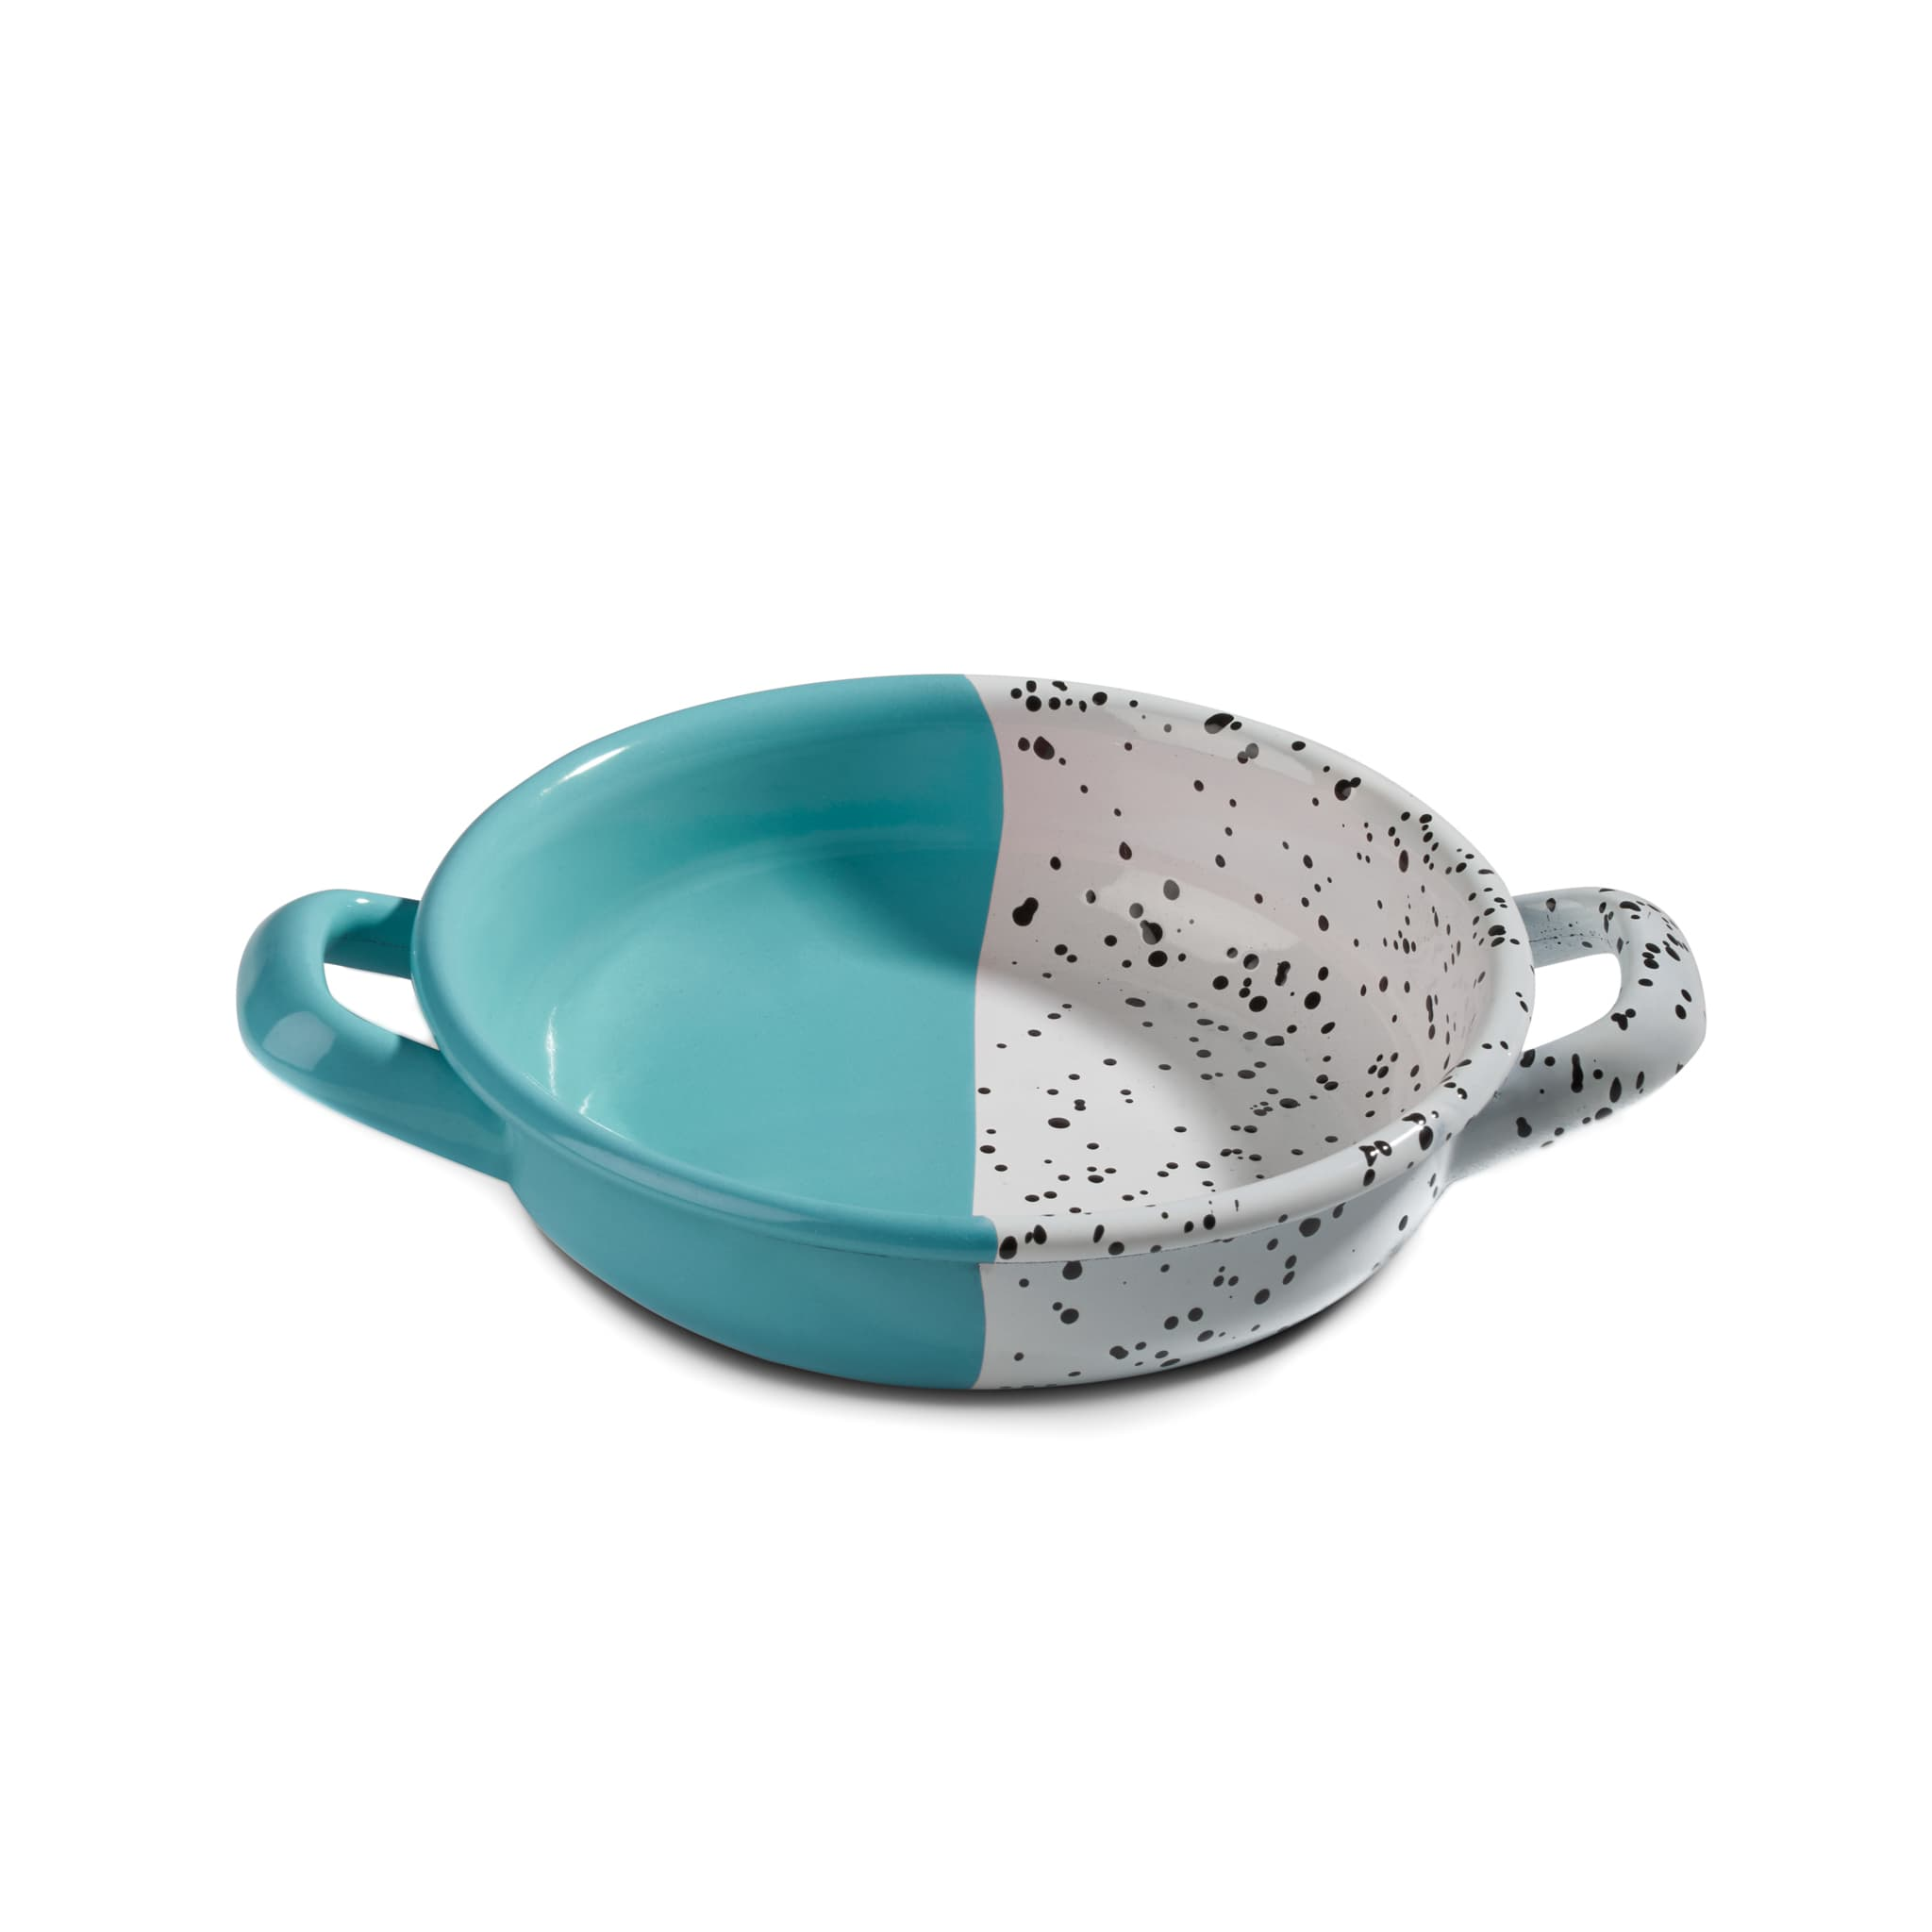 Kapka Colour Pop Enamel Frying Pan and Serving Dish Turquoise 16cm Turkish Oven to Tableware